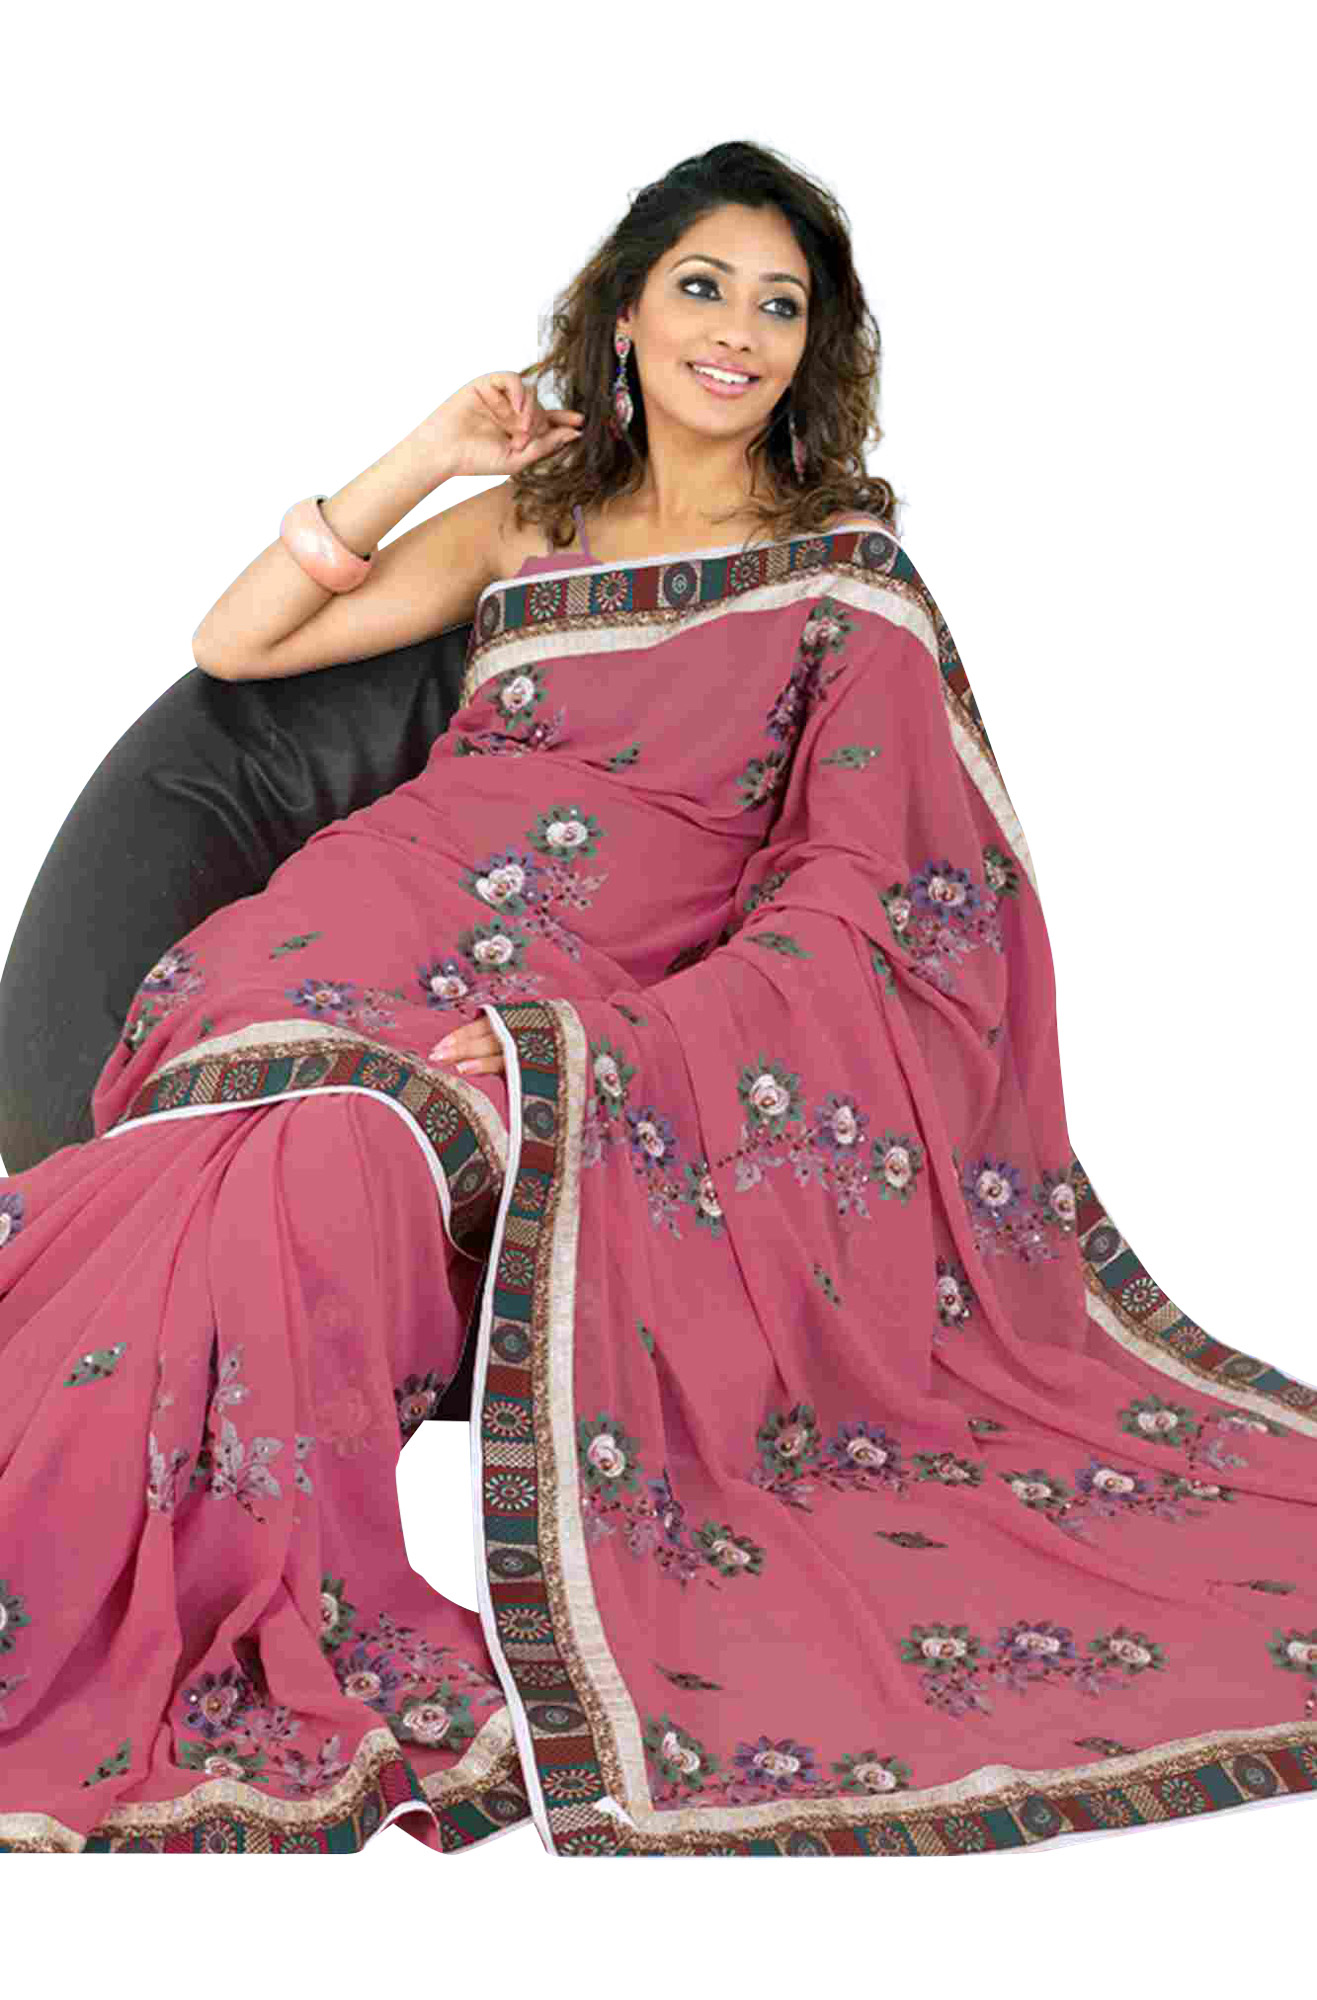 Indian Selections Bhagirathi Fancy festival wear designer Georgette Sari  saree at Sears.com